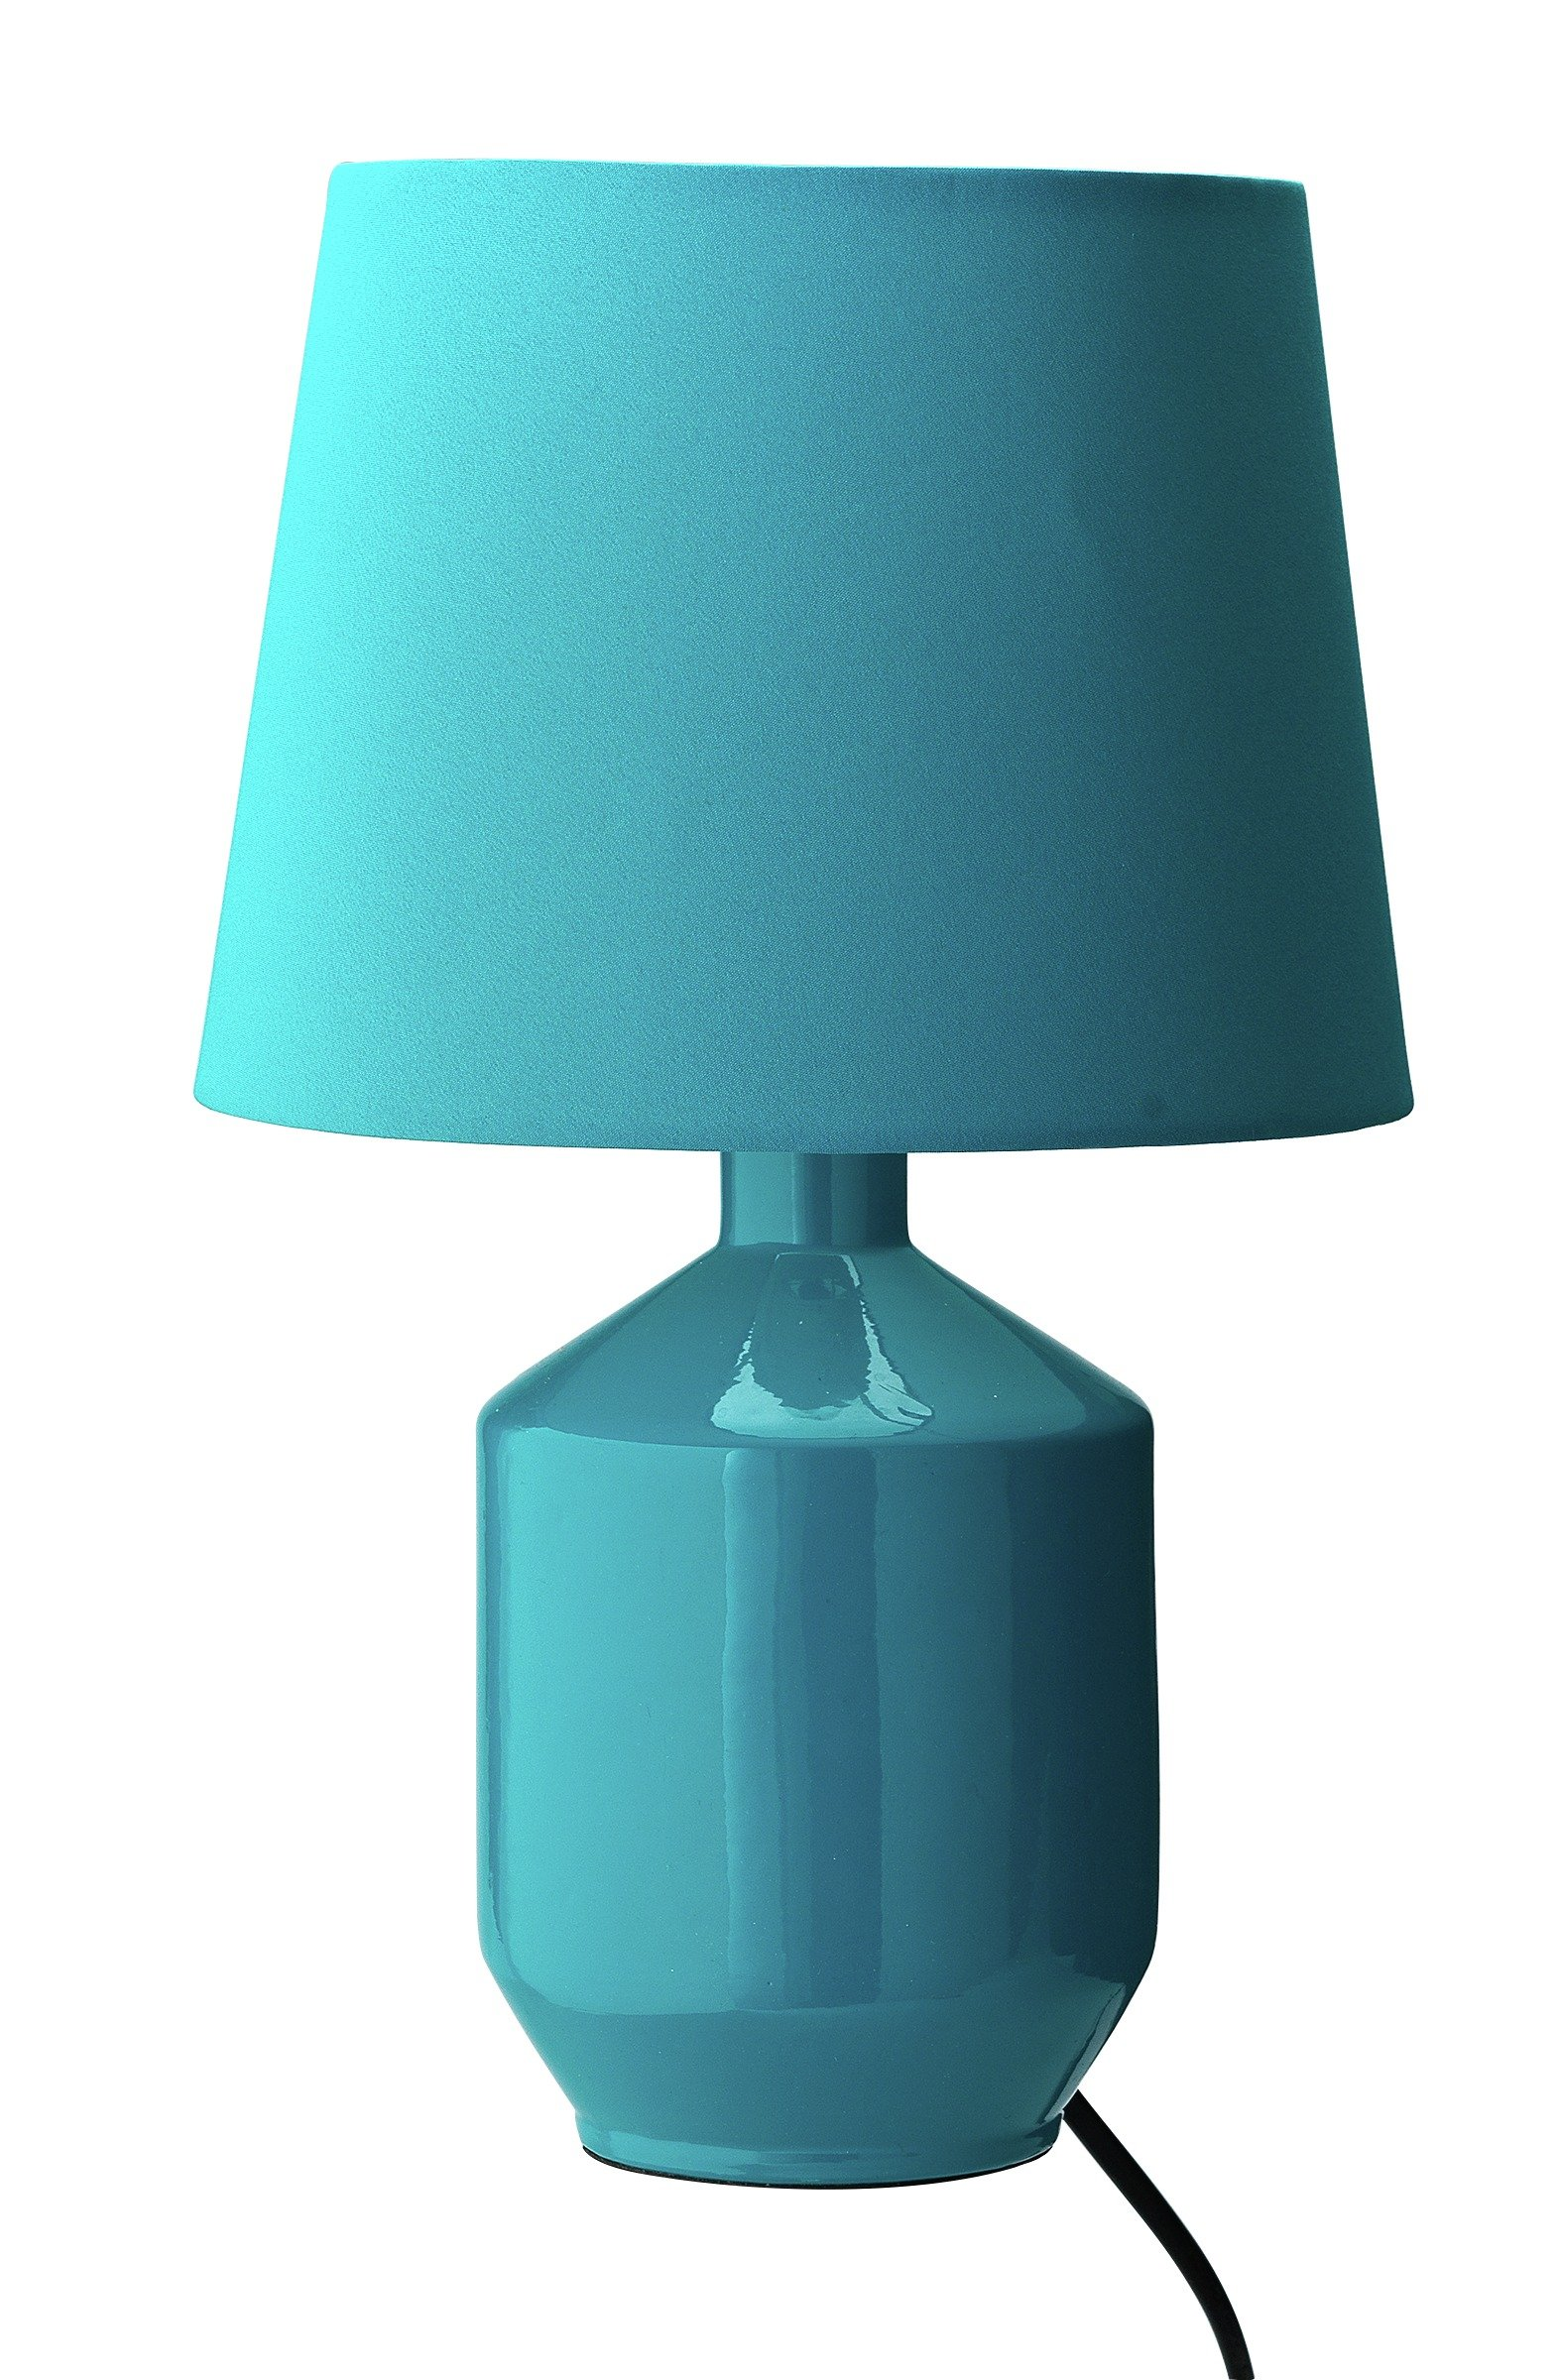 Colourmatch ceramic table lamp teal